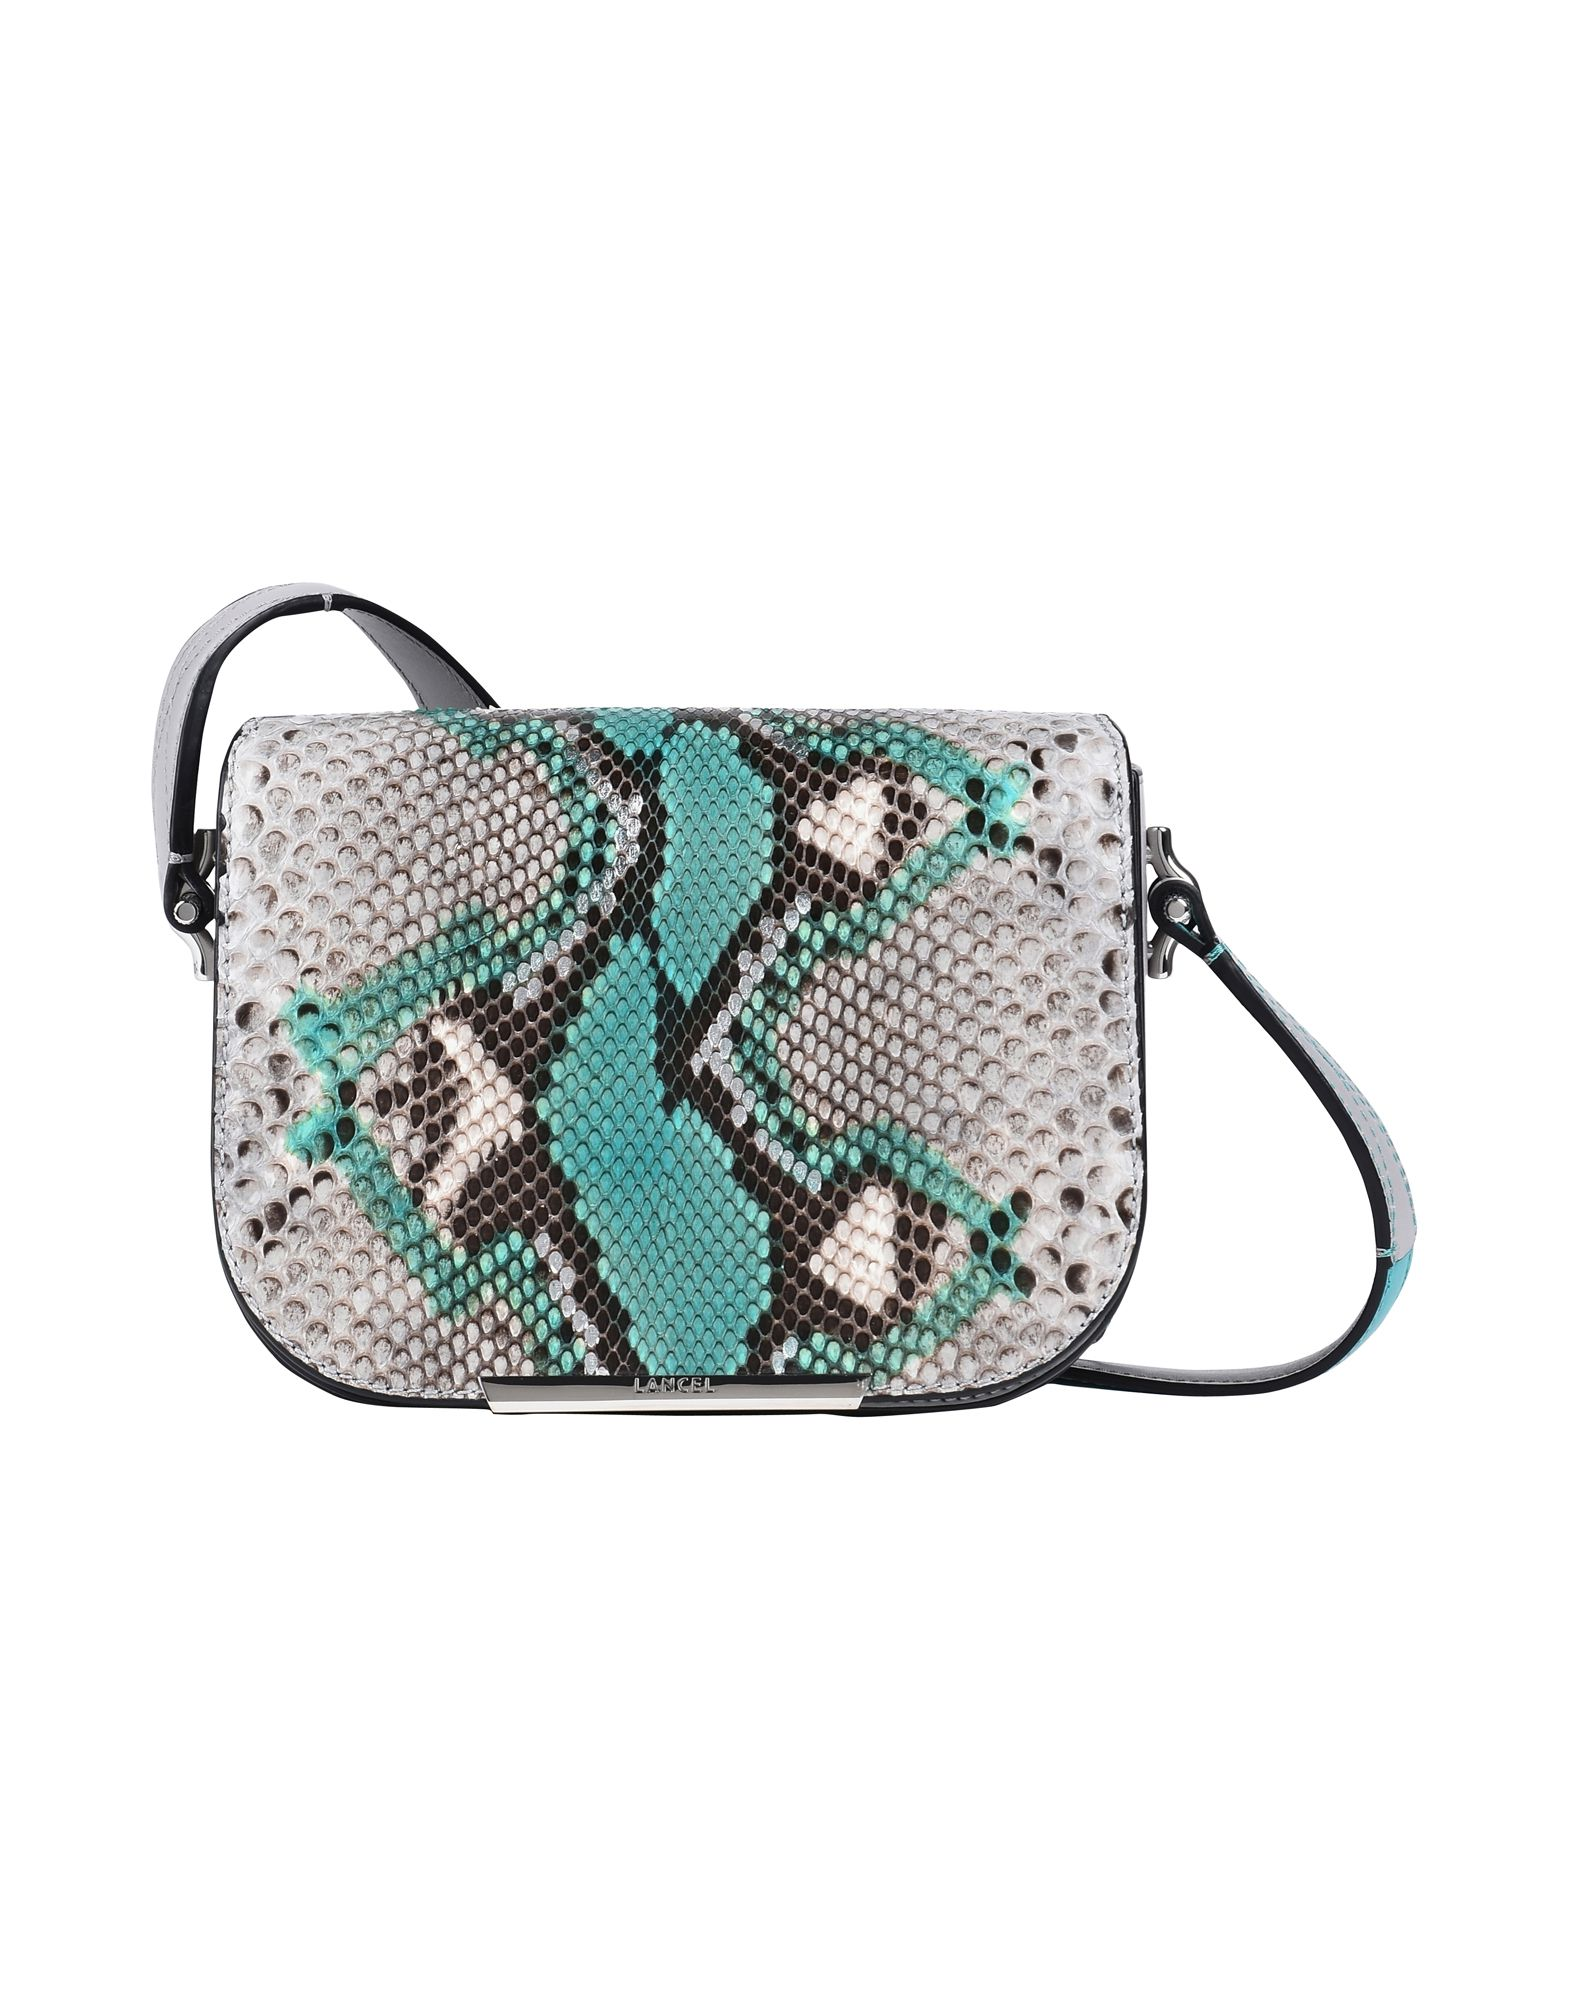 Borsa A Tracolla Lancel Bianca Painted Python/Leather/Suede - Donna - Acquista online su